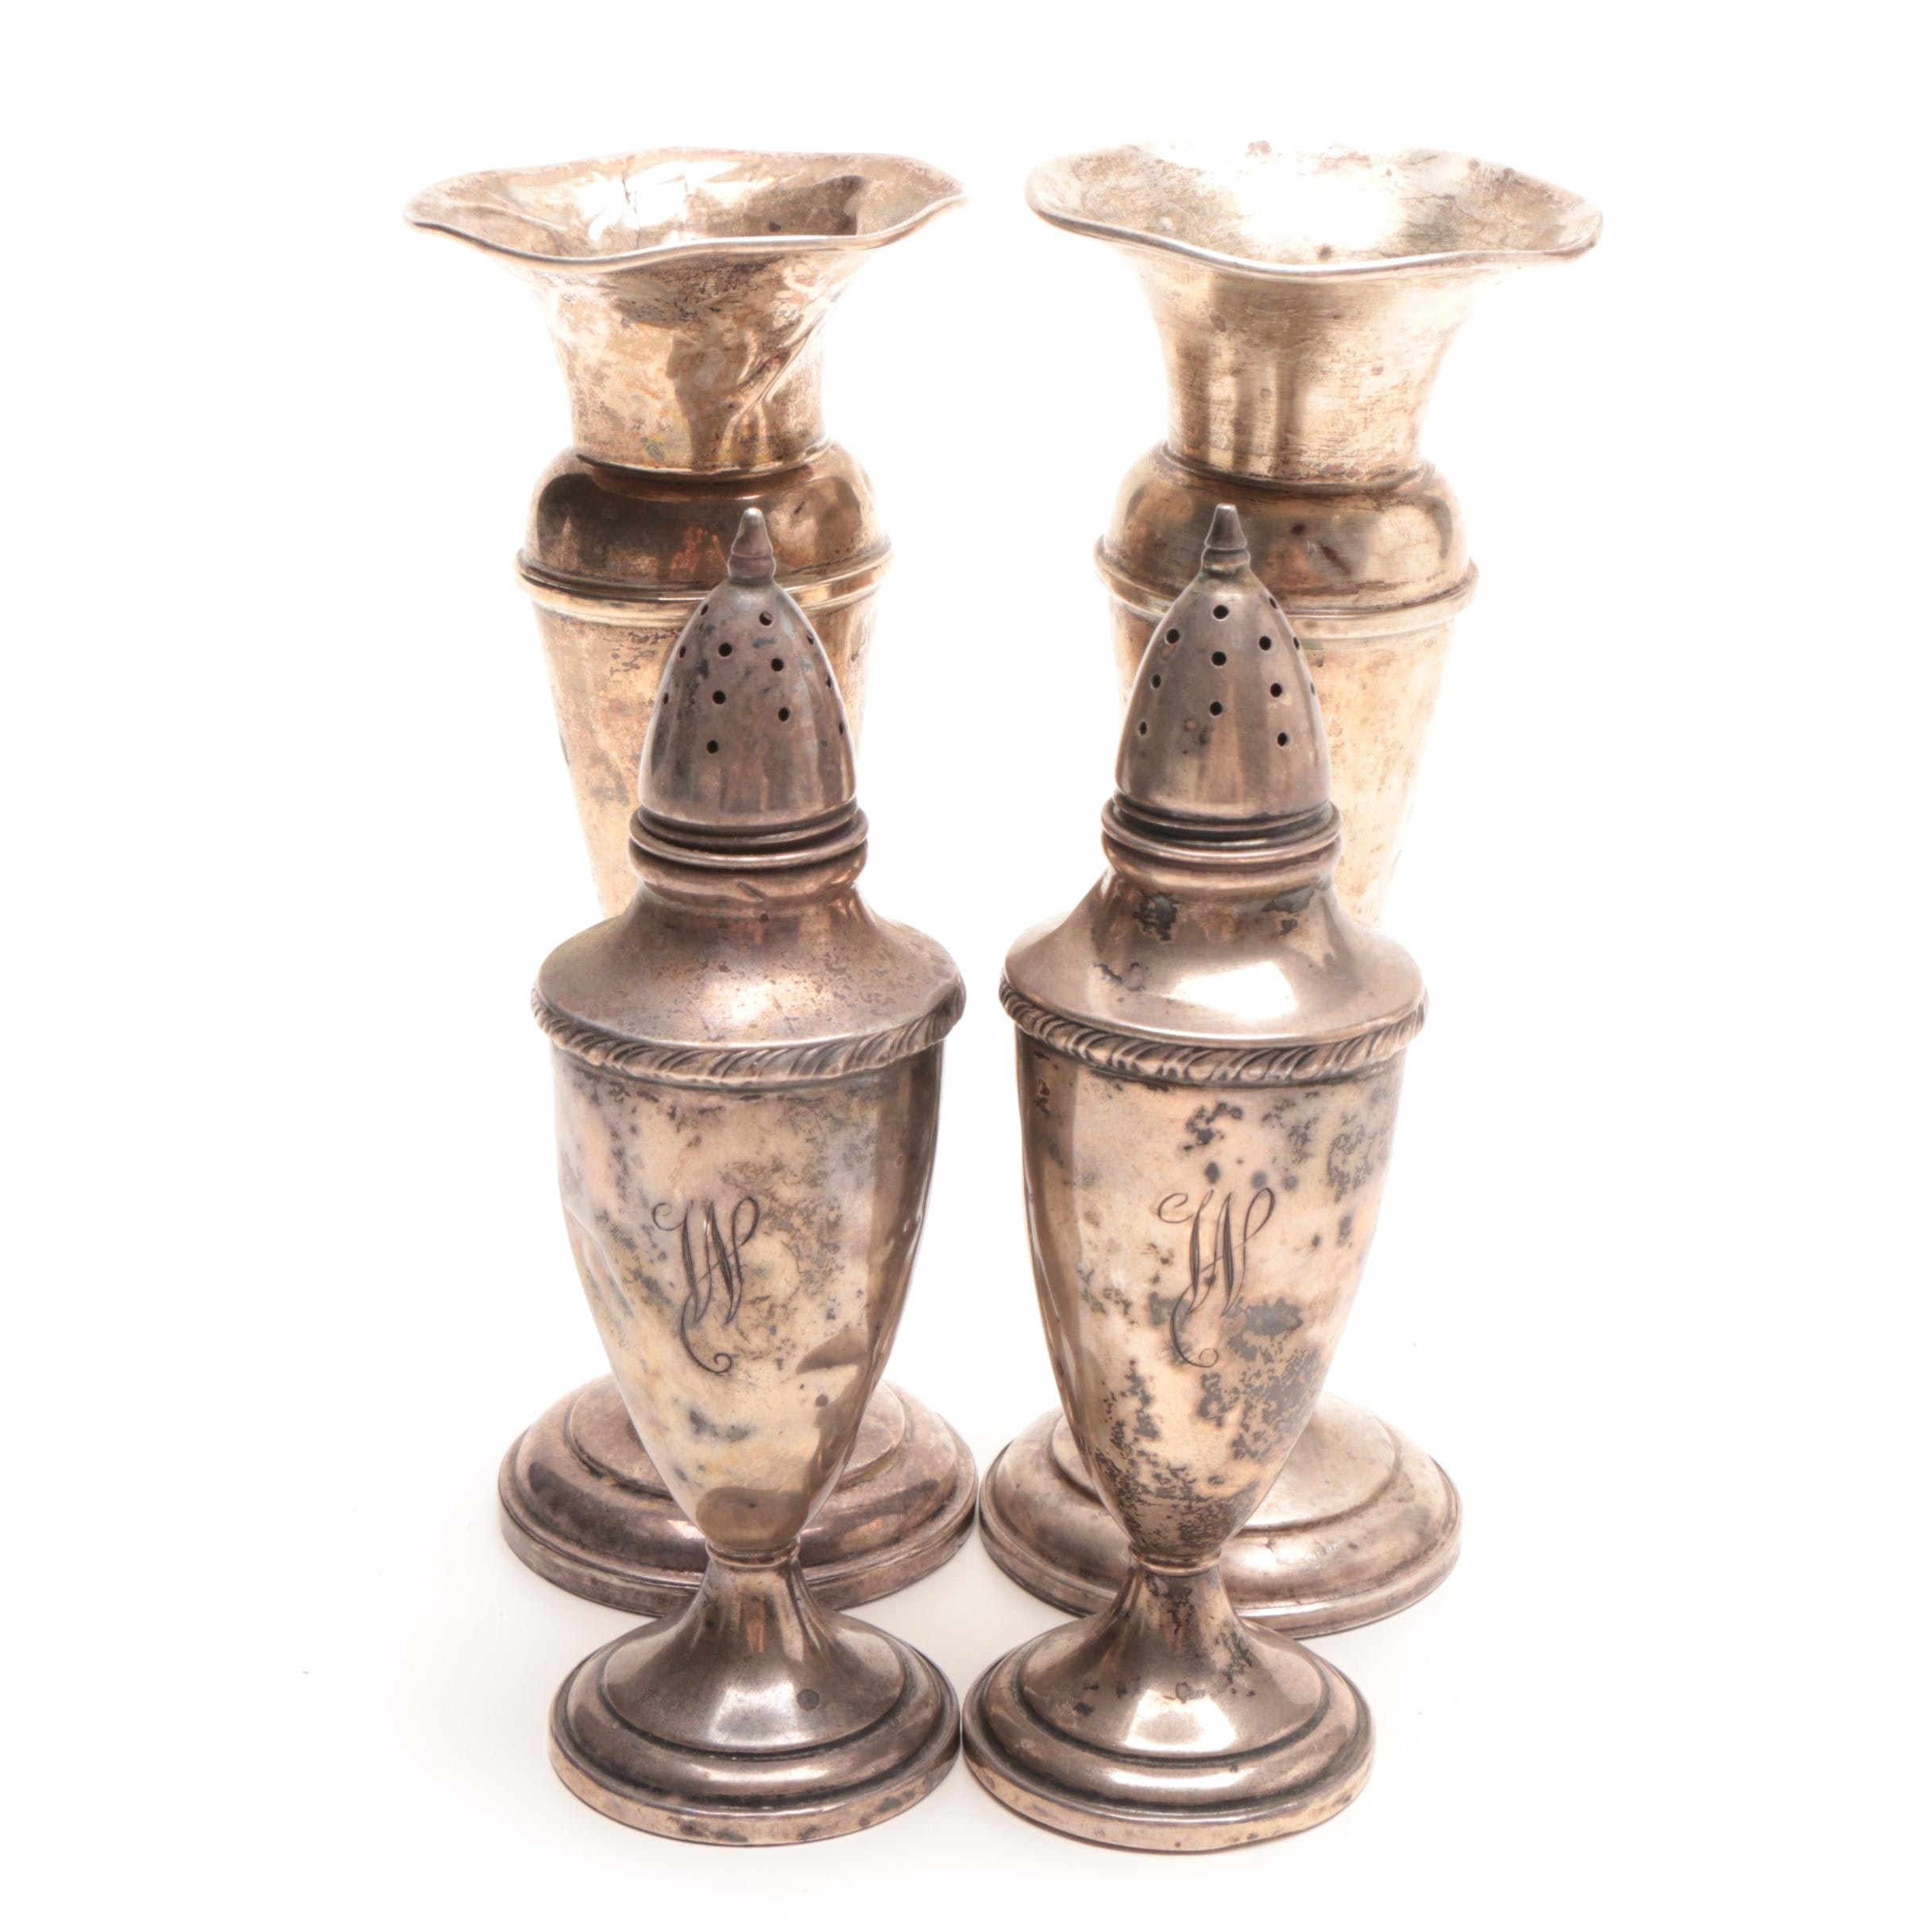 M. Fred Hirsch Weighted Sterling Shakers and Preisner Weighted Sterling Vases